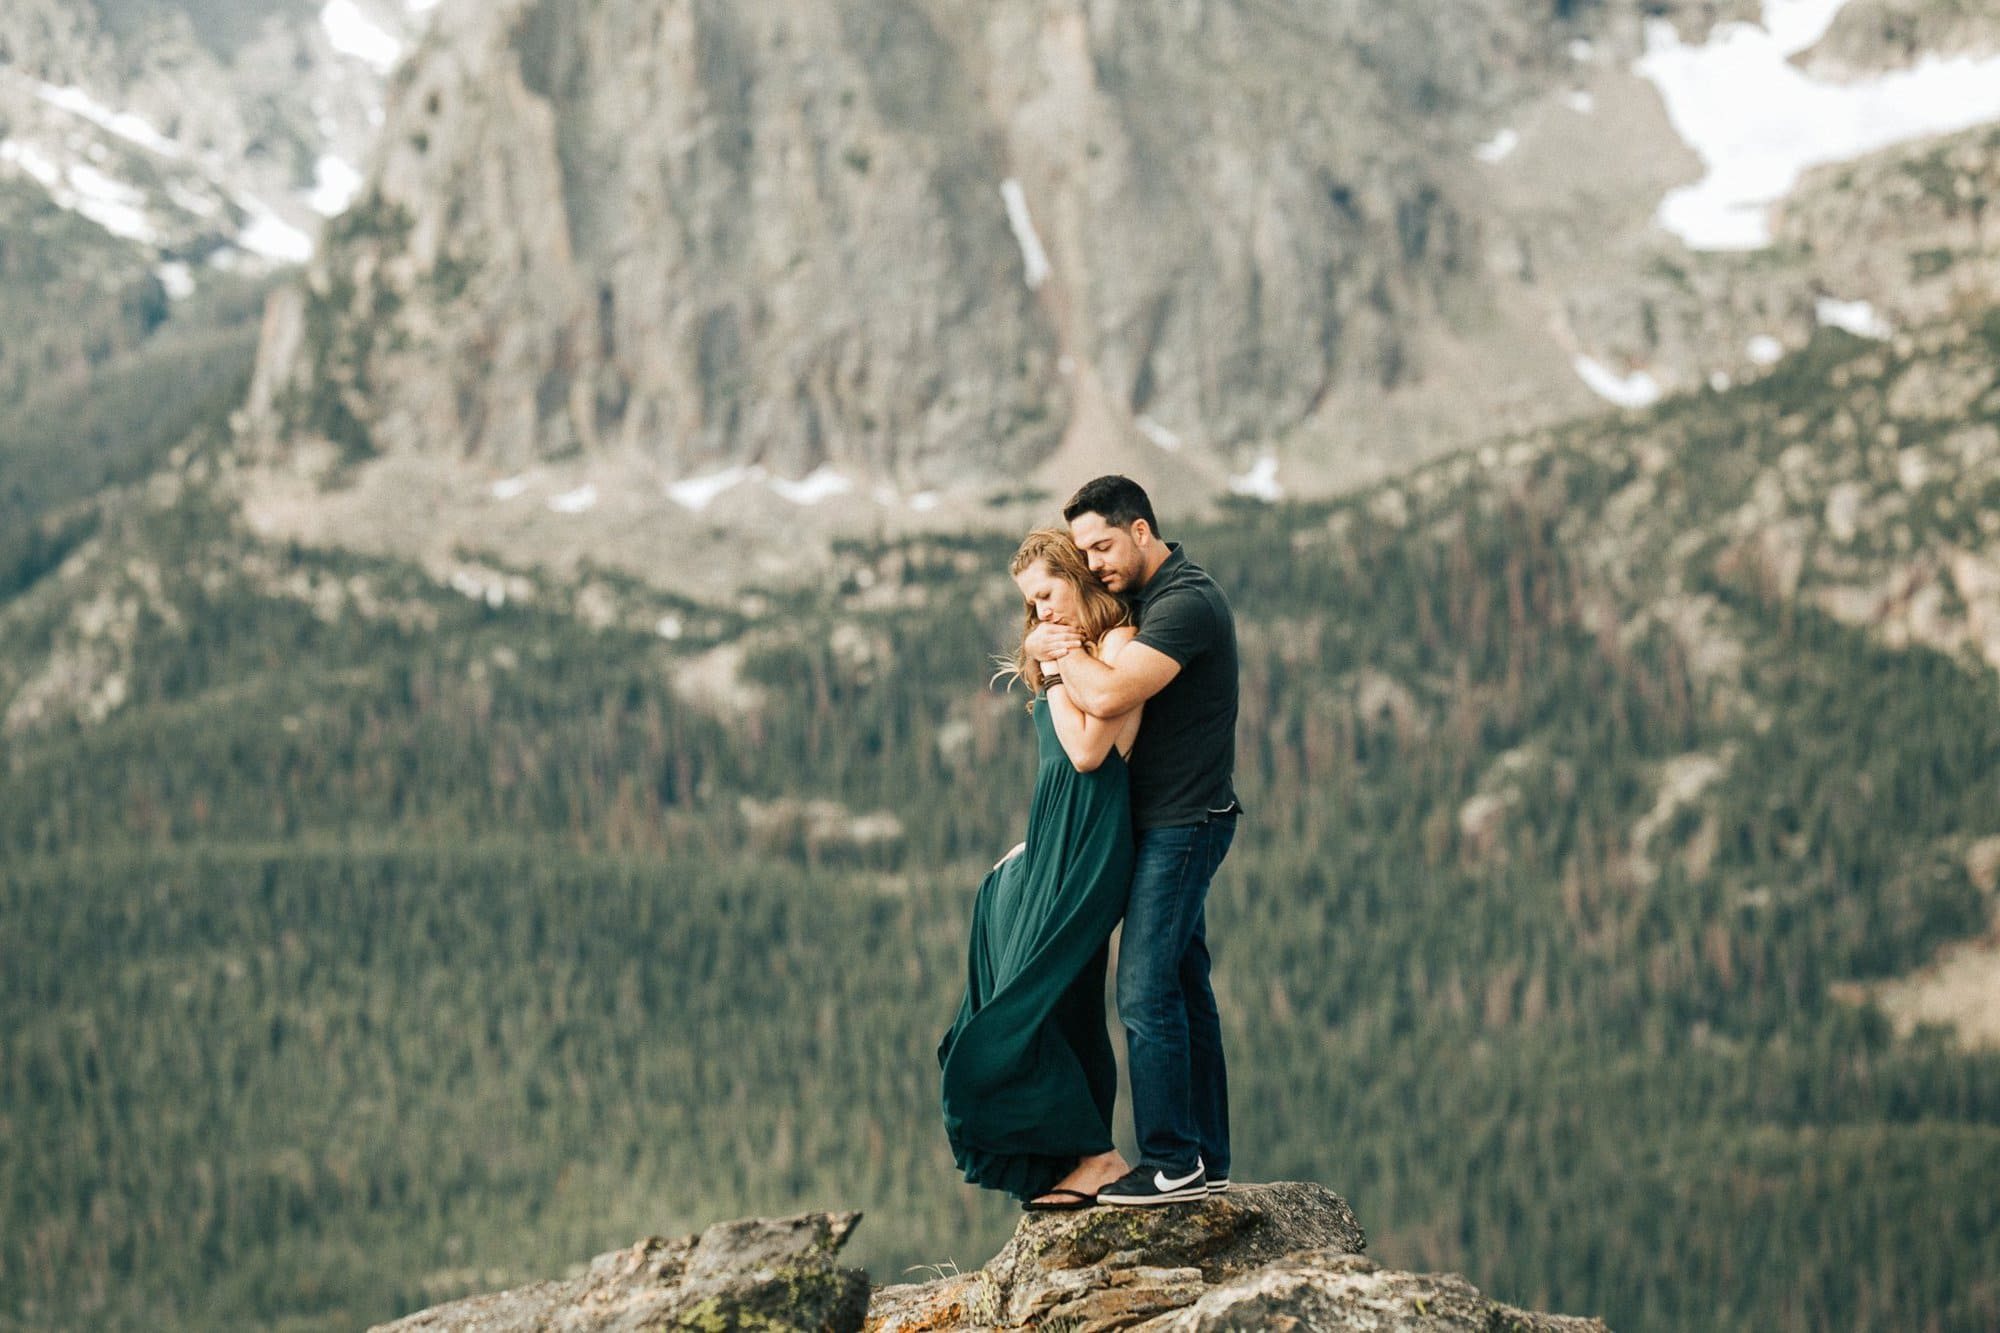 Rocky Mountain National park, Trail Ridge Road, Engagement Session, Colorado Mountain Wedding Photographer, 3 M Curve Engagement, Justyna E Butler